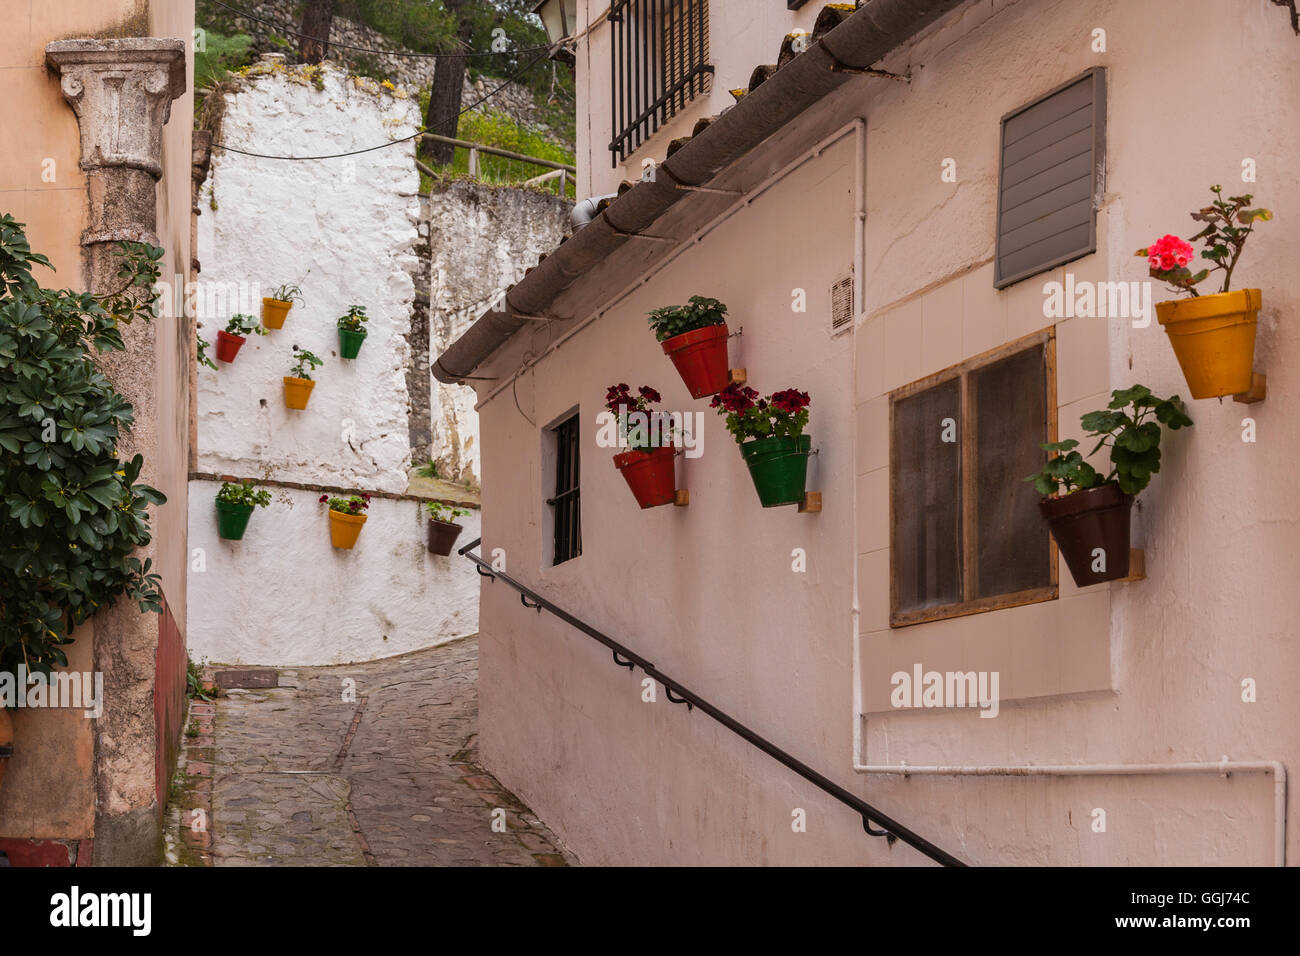 Spanish houses wall lined up with flower pots with assorted flowers in Sahara de la Sierra. - Stock Image